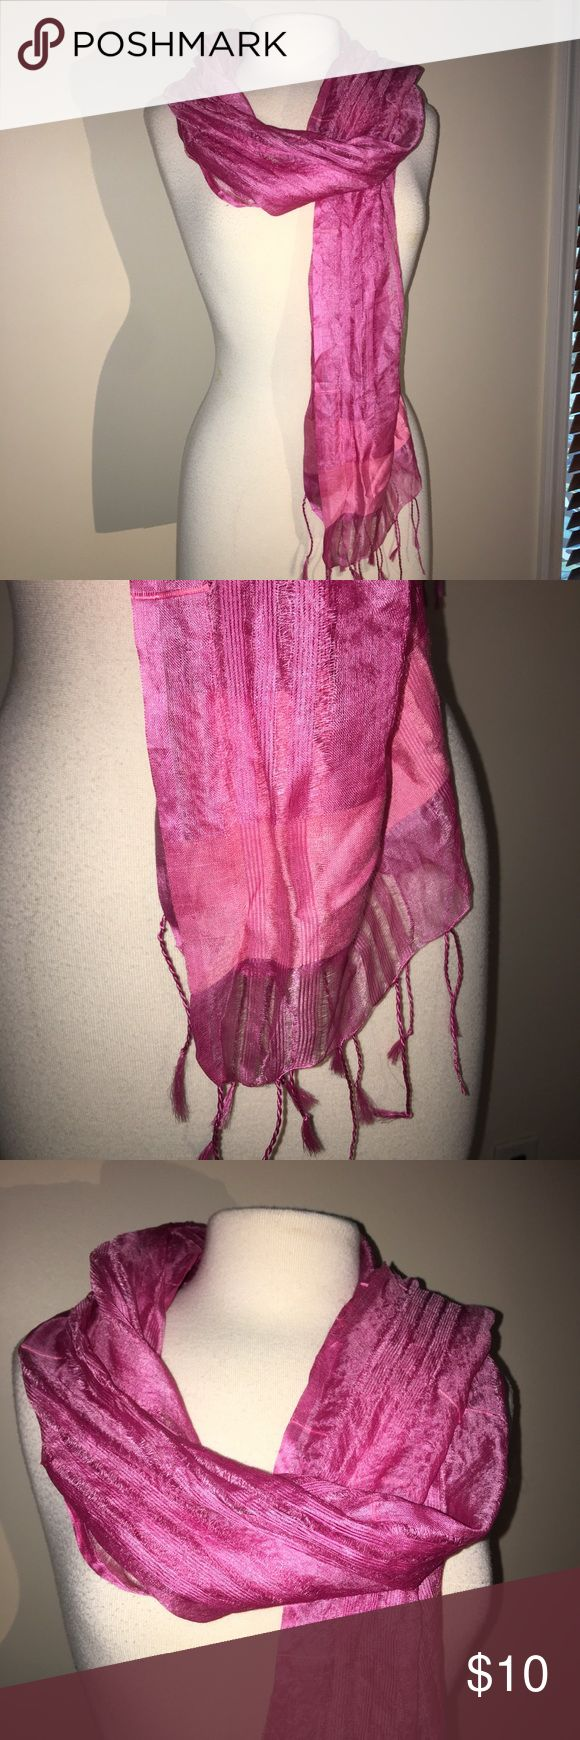 "World Market Pink Silk Fringed scarf World Market Pink Ling scarf 80% silk, 20% rayon Braided fringe at ends Measures 67"" X 20"" (fringe not in measurement) In my drawer for quite a few years and never worn Smoke free home New without tags This closet does not trade world market Accessories Scarves & Wraps"